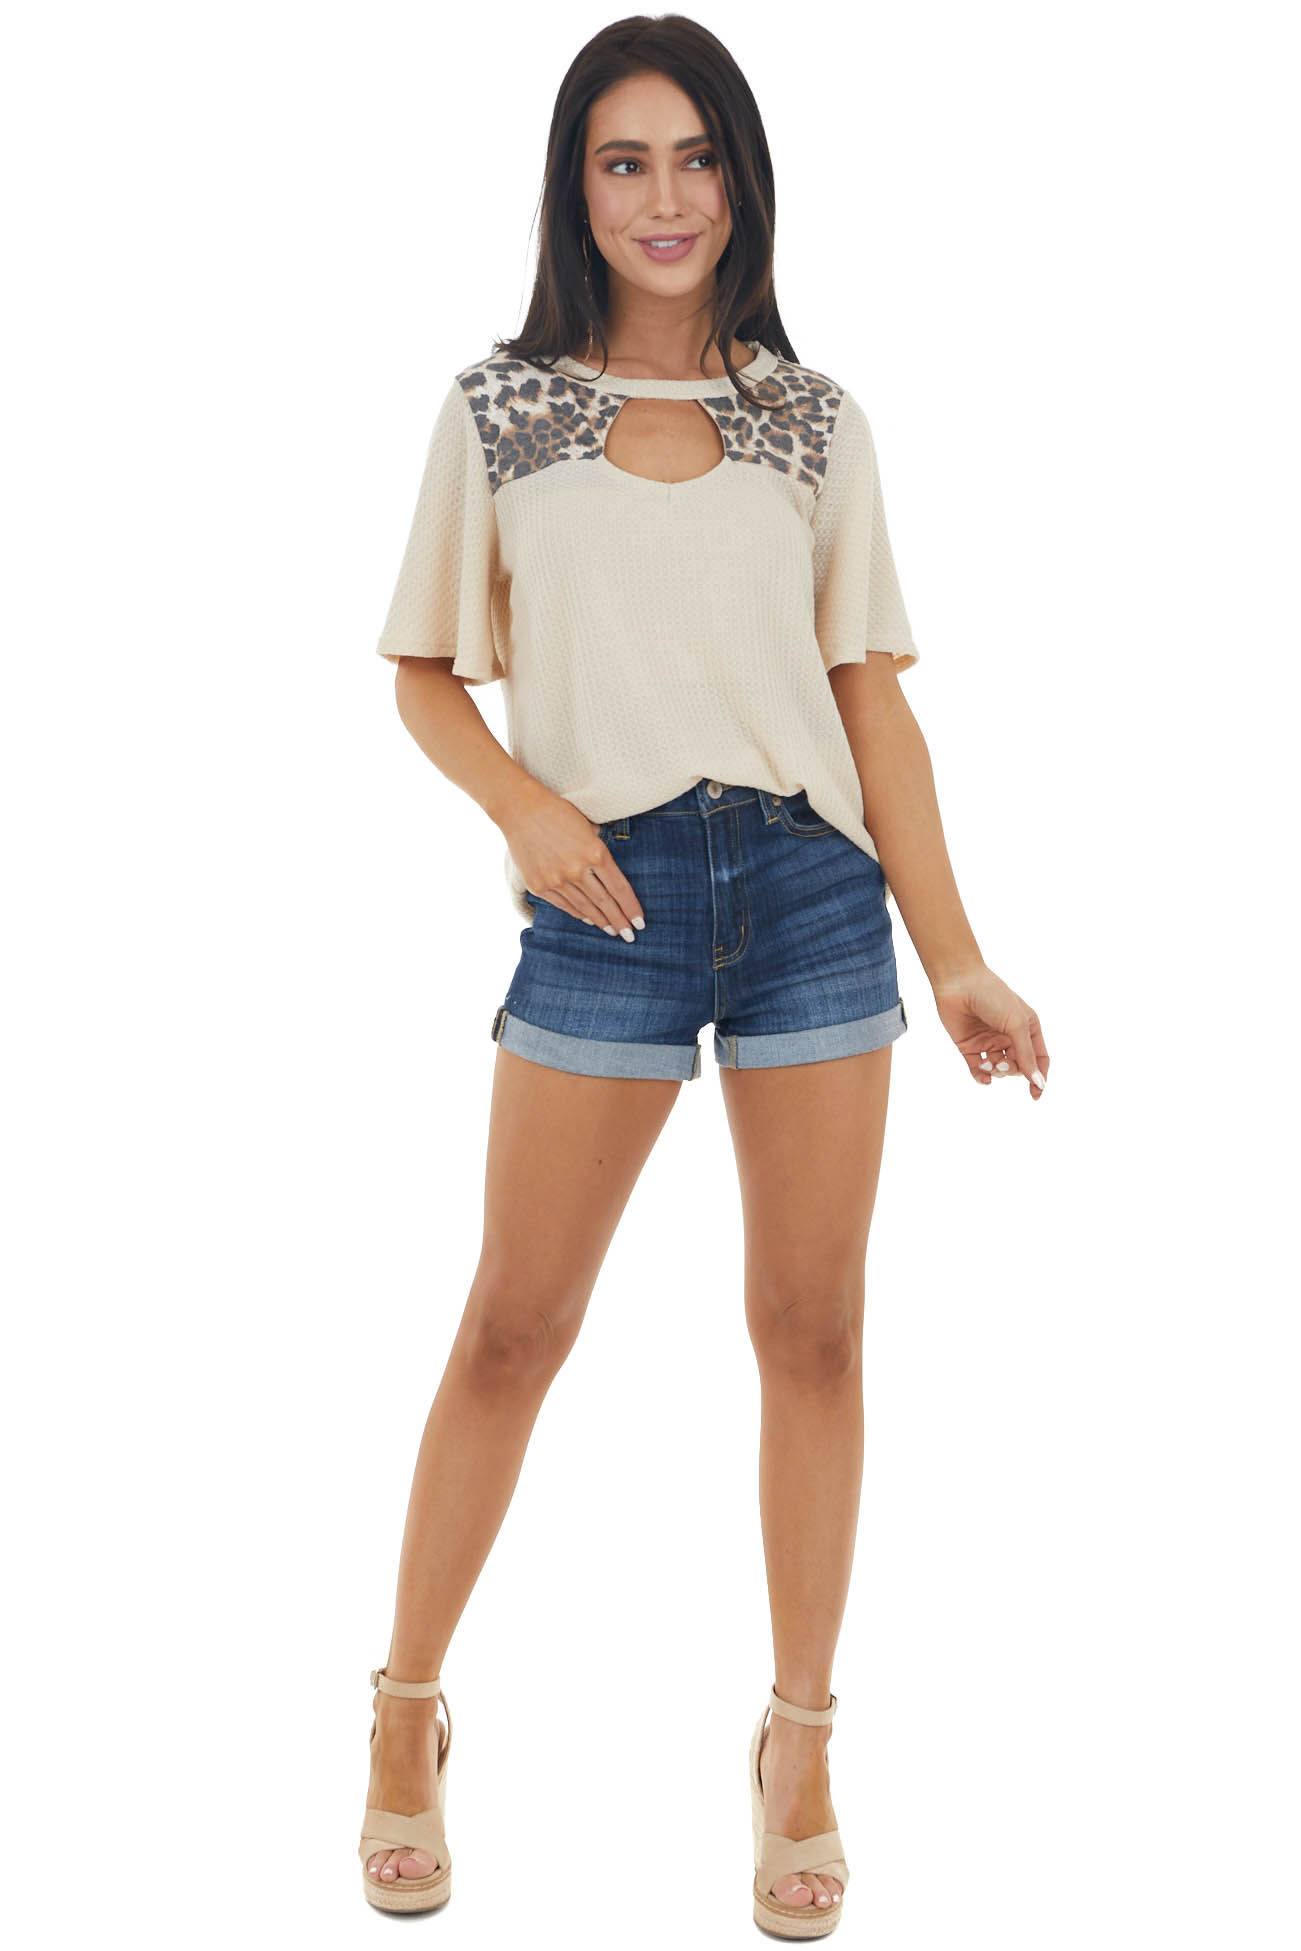 Desert Sand Short Sleeve Waffle Knit Top with Leopard Print